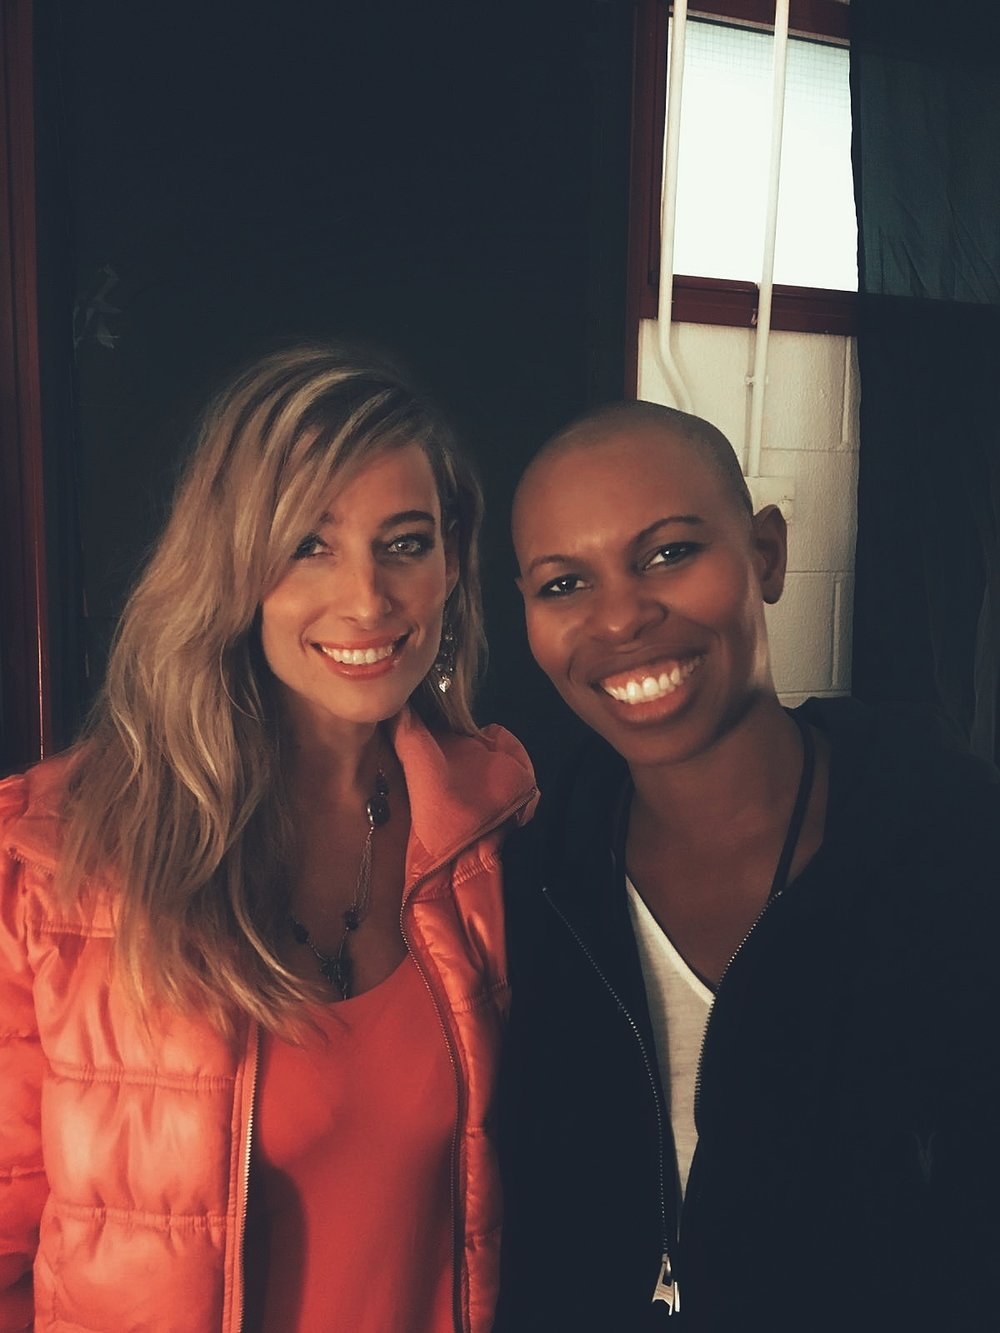 Jessica and recording artist and friend Skin backstage during the world tour of Skin's famed punk rock group, Skunk Anansie